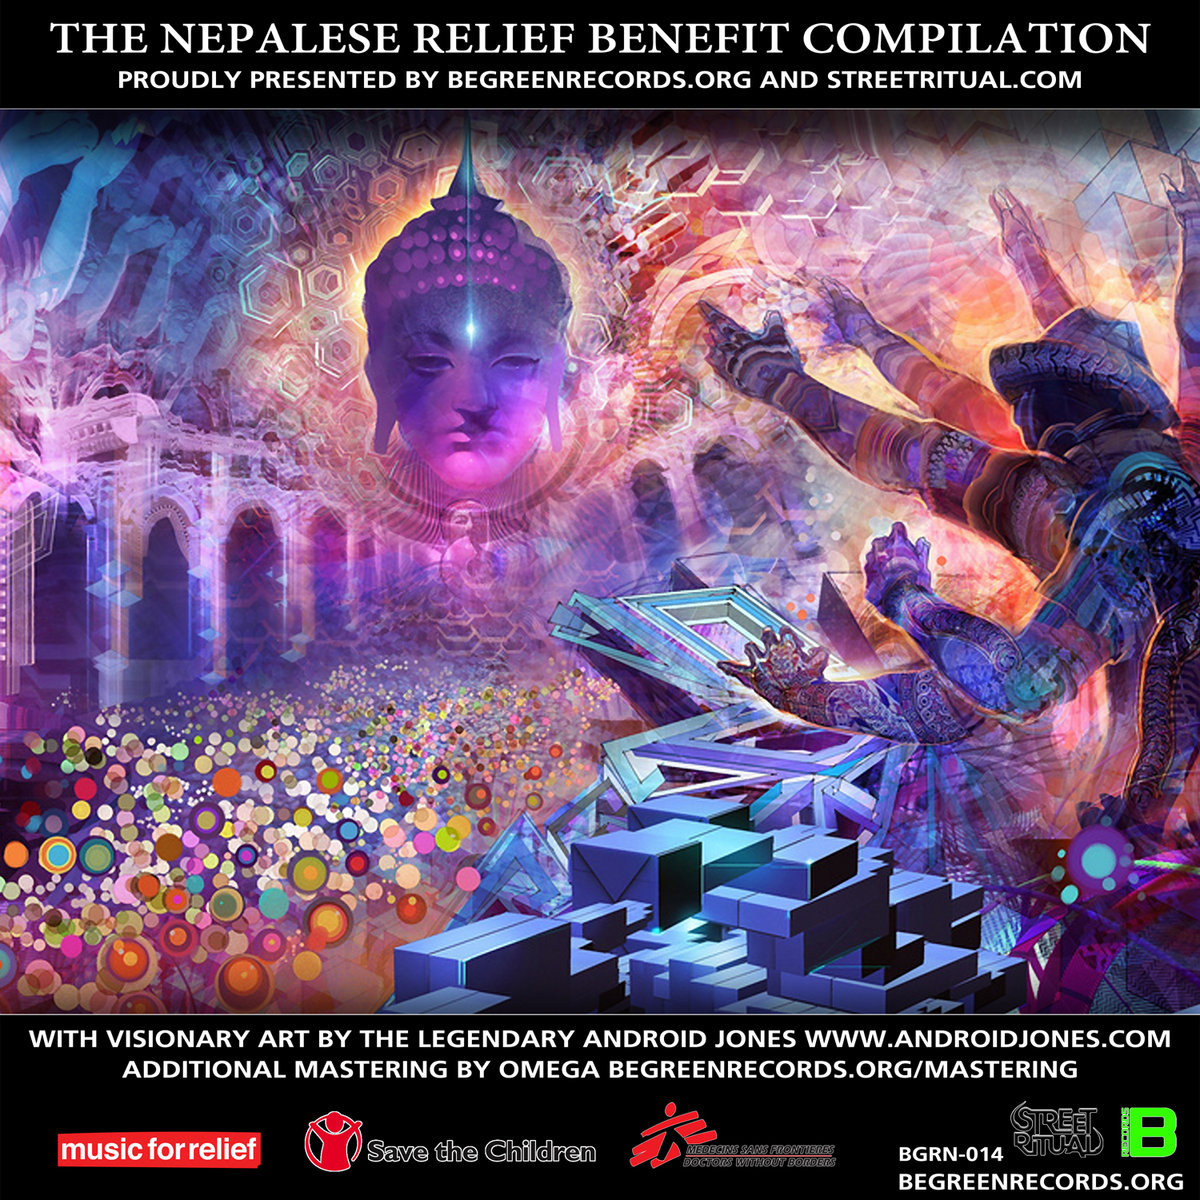 Subaqueous - Solemn Heart @ 'Various Artists - The Nepalese Relief Benefit Compilation' album (bass, electronic)